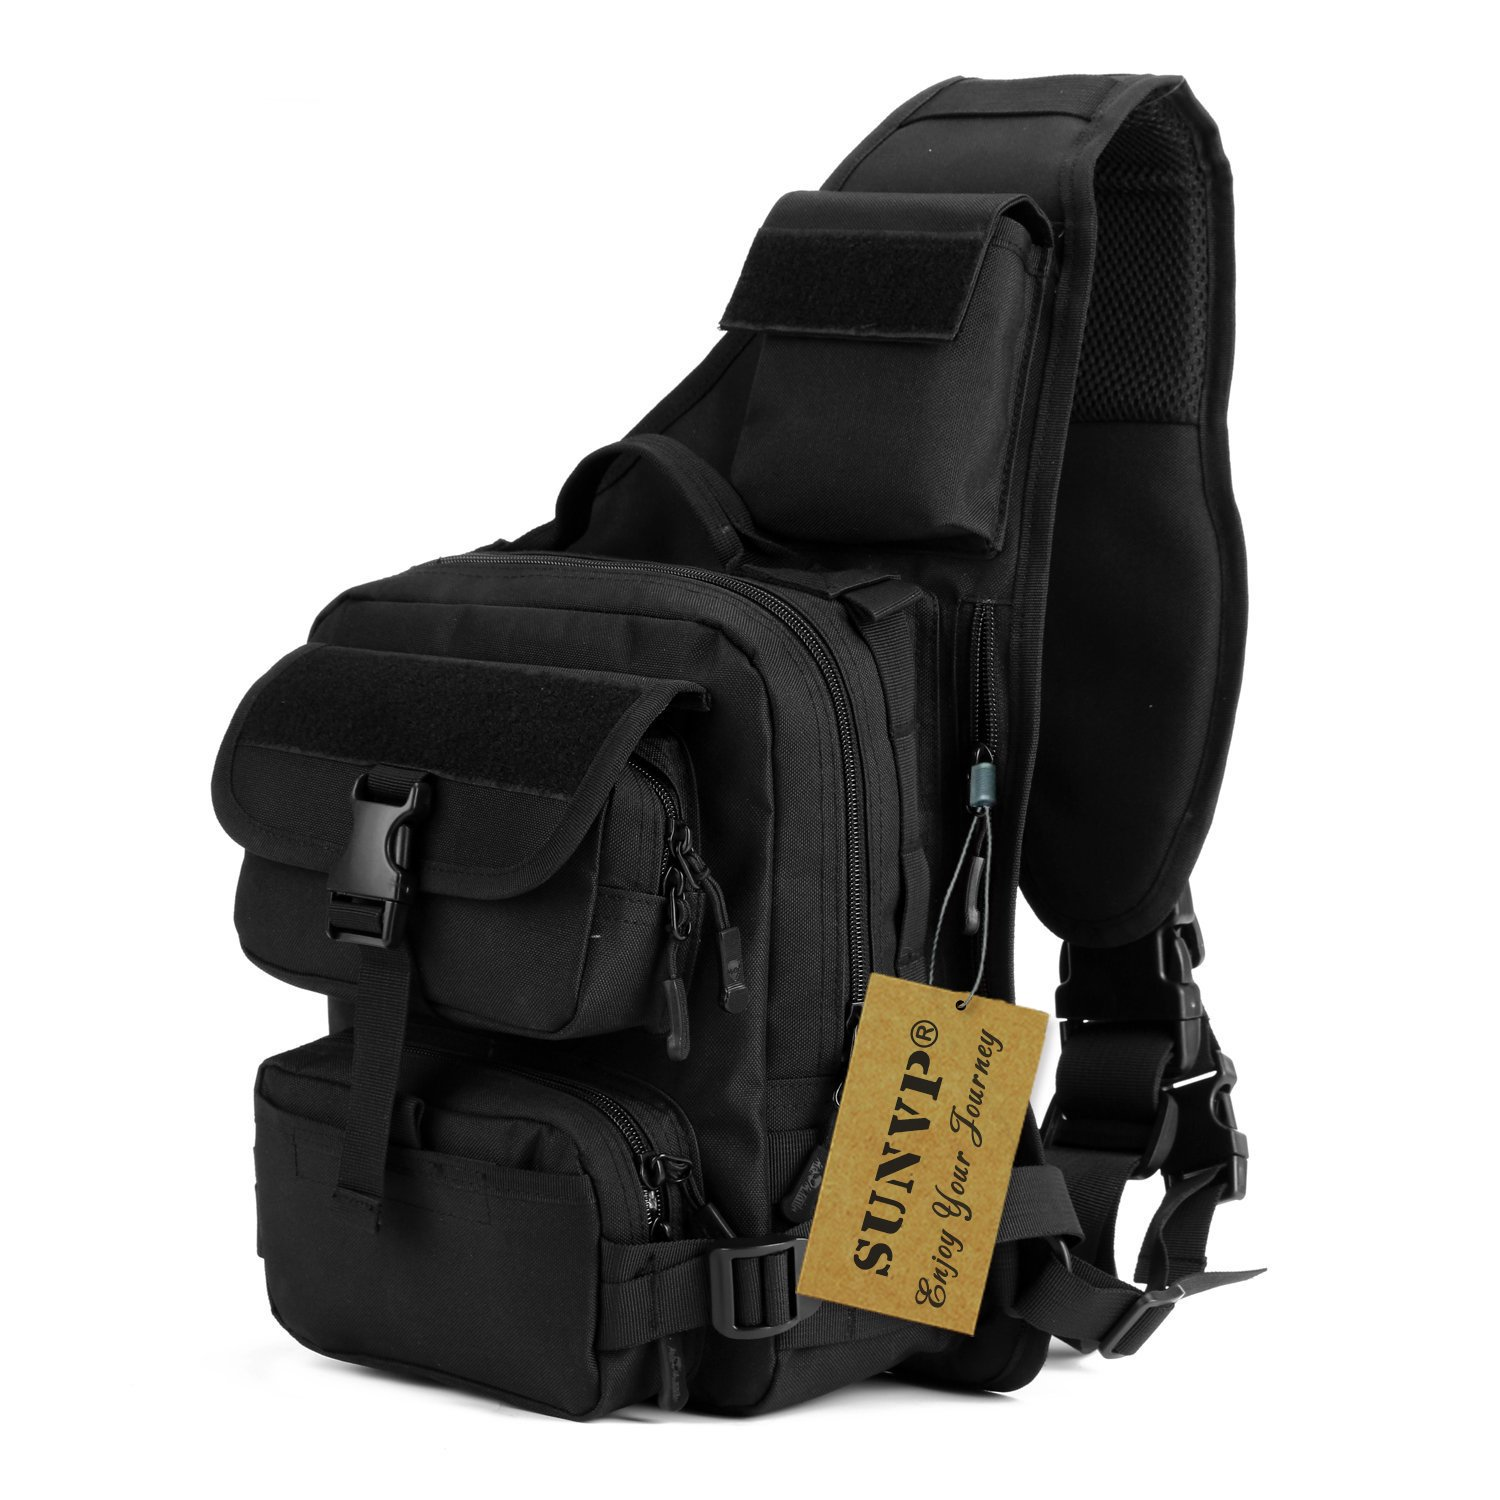 protector plus tactical military sling chest pack bag